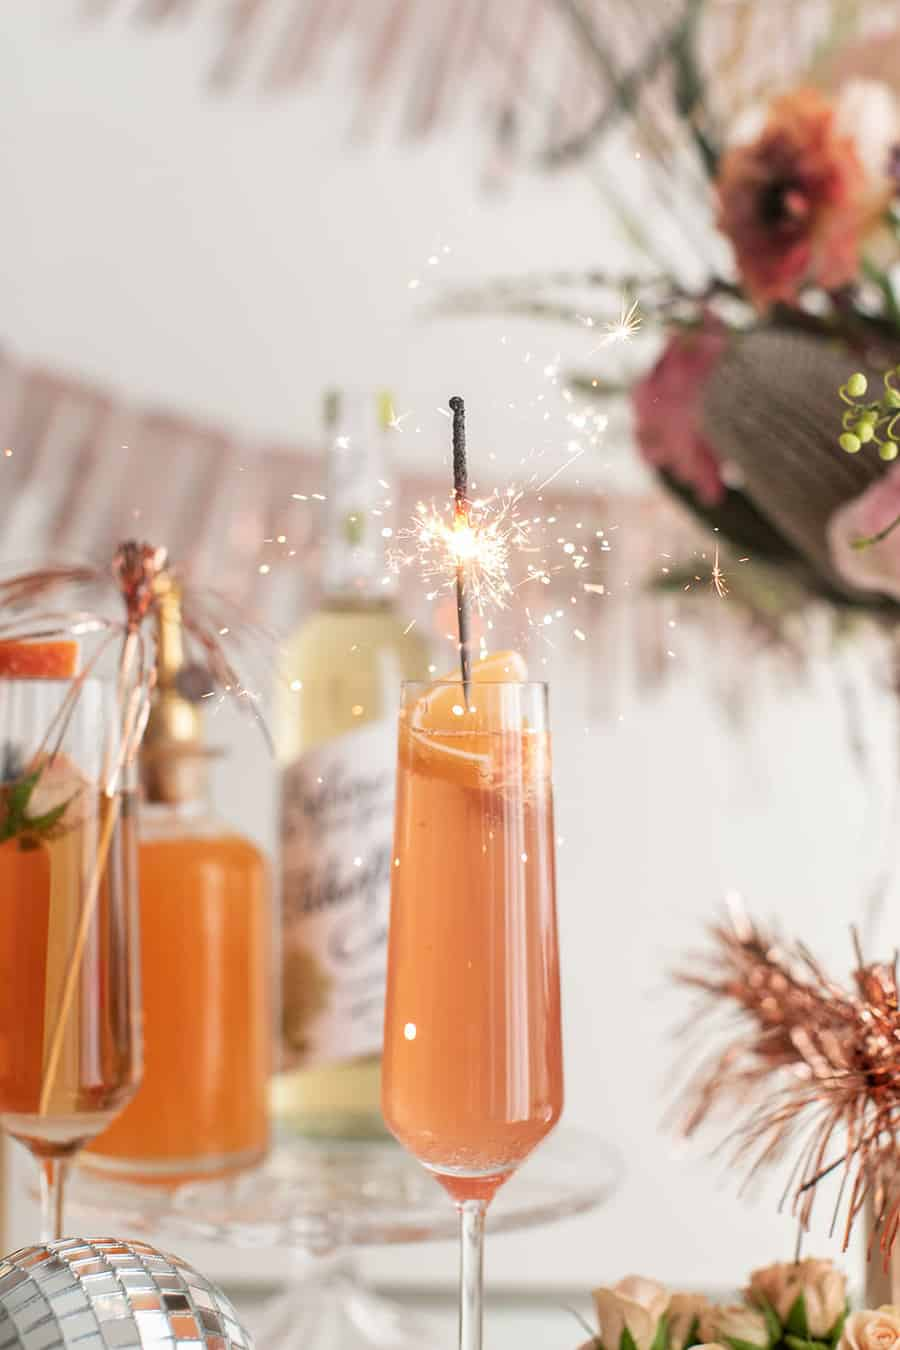 Champagne cocktail with a sparkler.